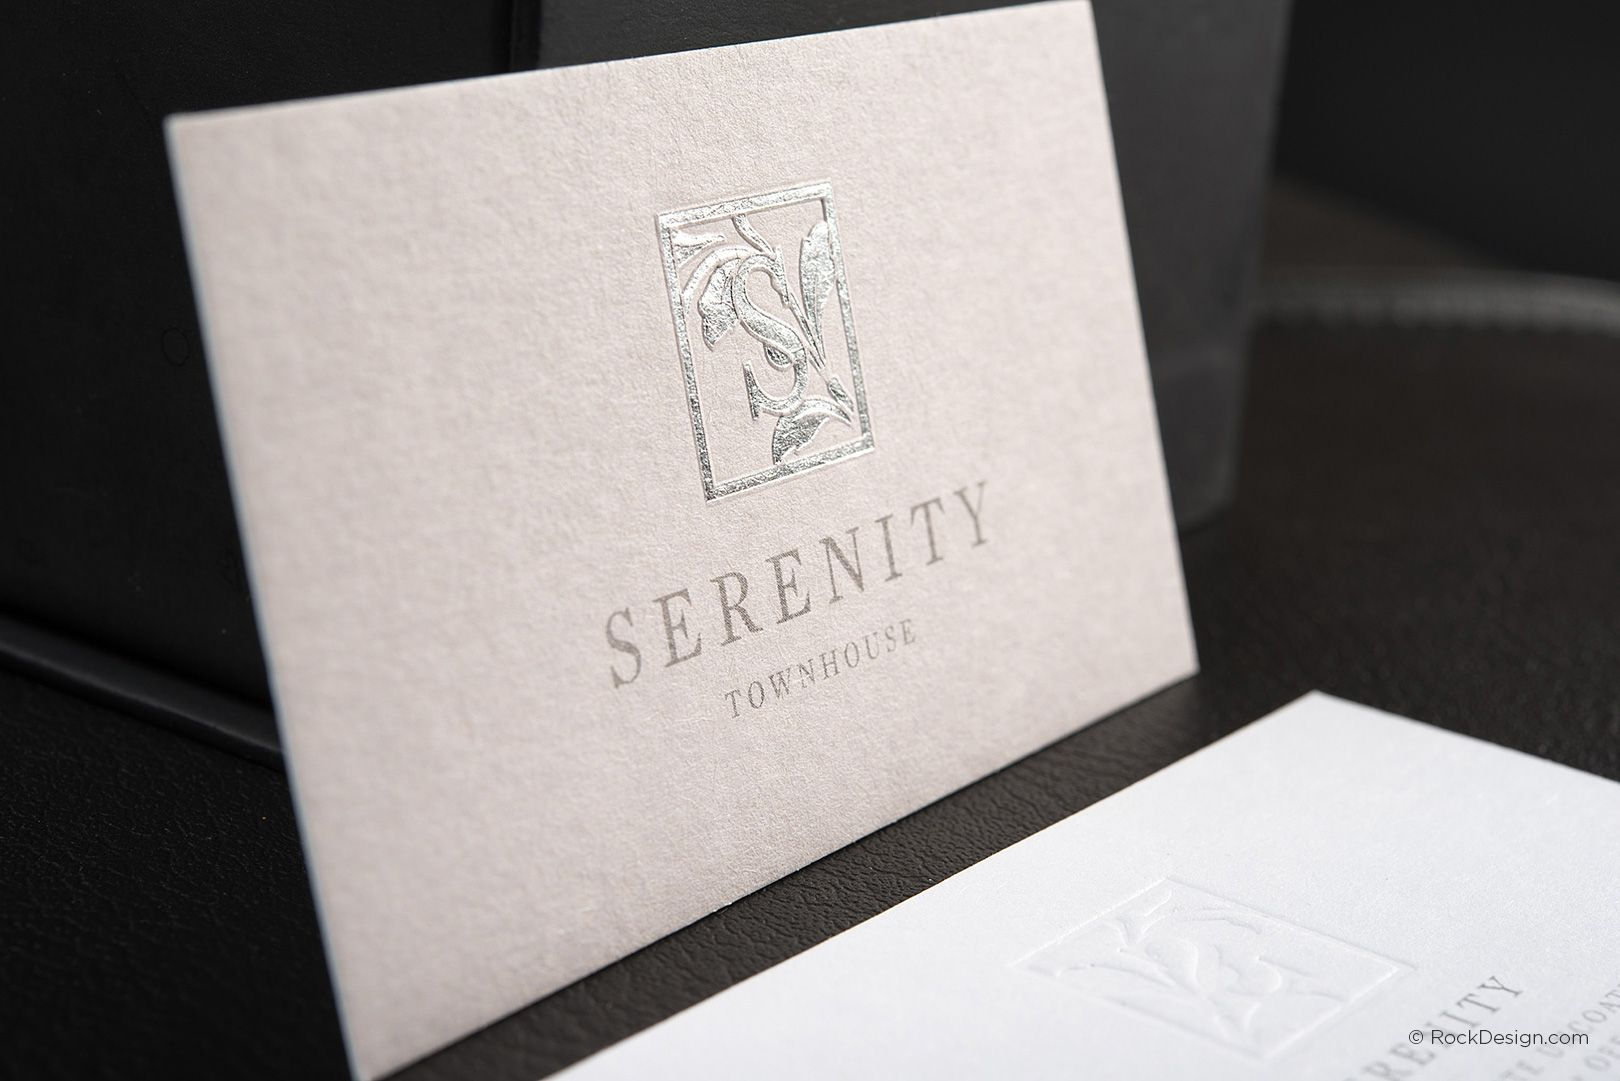 Classic foil stamped with emboss business card - Serenity ...